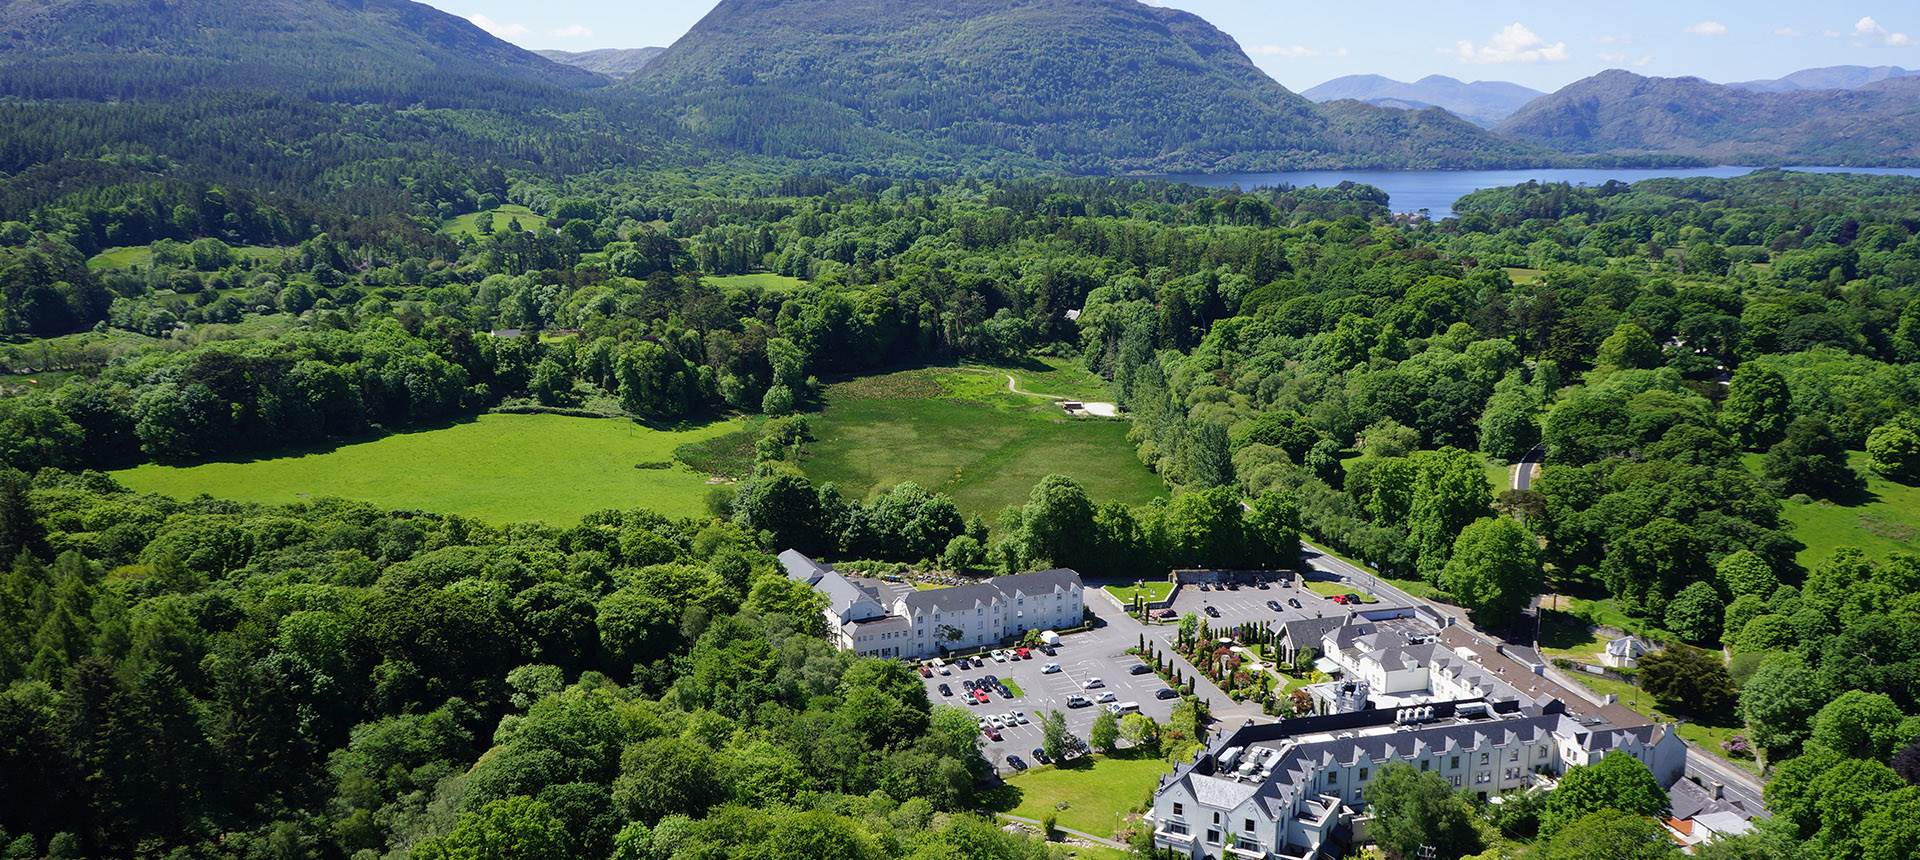 Muckross Park Hotel & Spa in Killarney